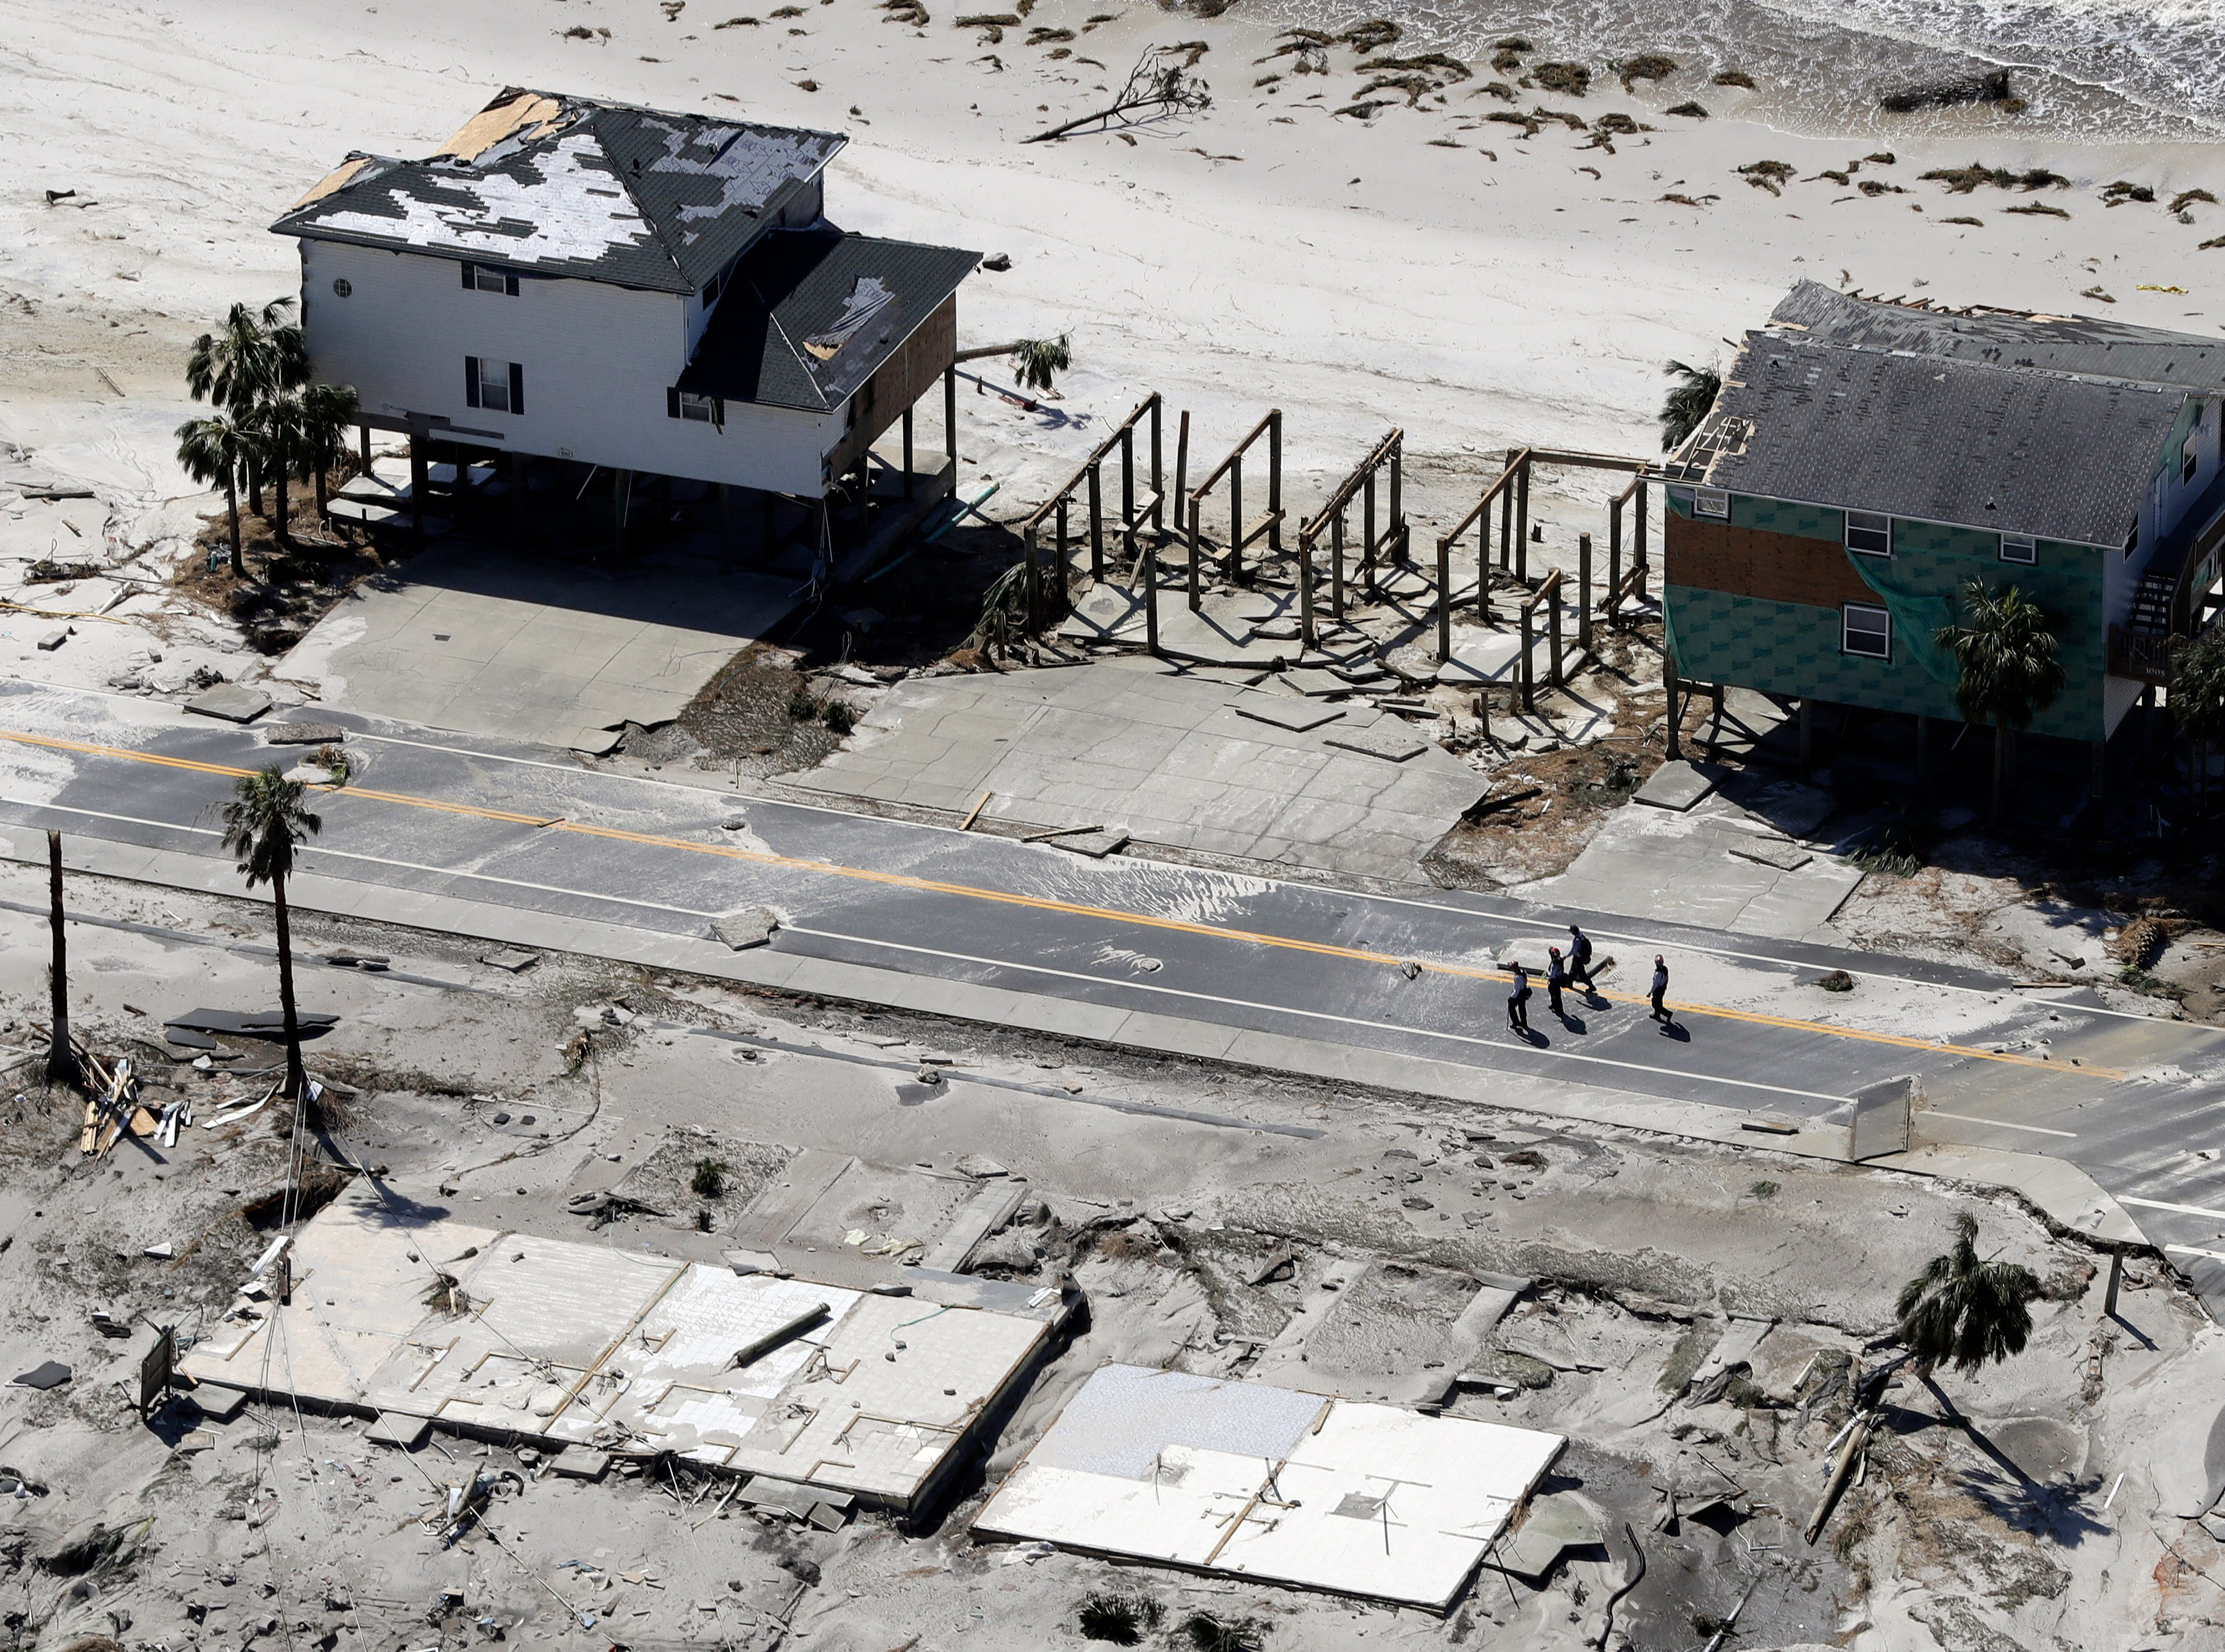 People walk past homes destroyed by Hurricane Michael are shown in this aerial photo Thursday, Oct. 11, 2018, in Mexico Beach, Fla. The devastation inflicted by Hurricane Michael came into focus Thursday with rows upon rows of homes found smashed to pieces, and rescue crews began making their way into the stricken areas in hopes of accounting for hundreds of people who may have stayed behind. (AP Photo/Chris O'Meara)